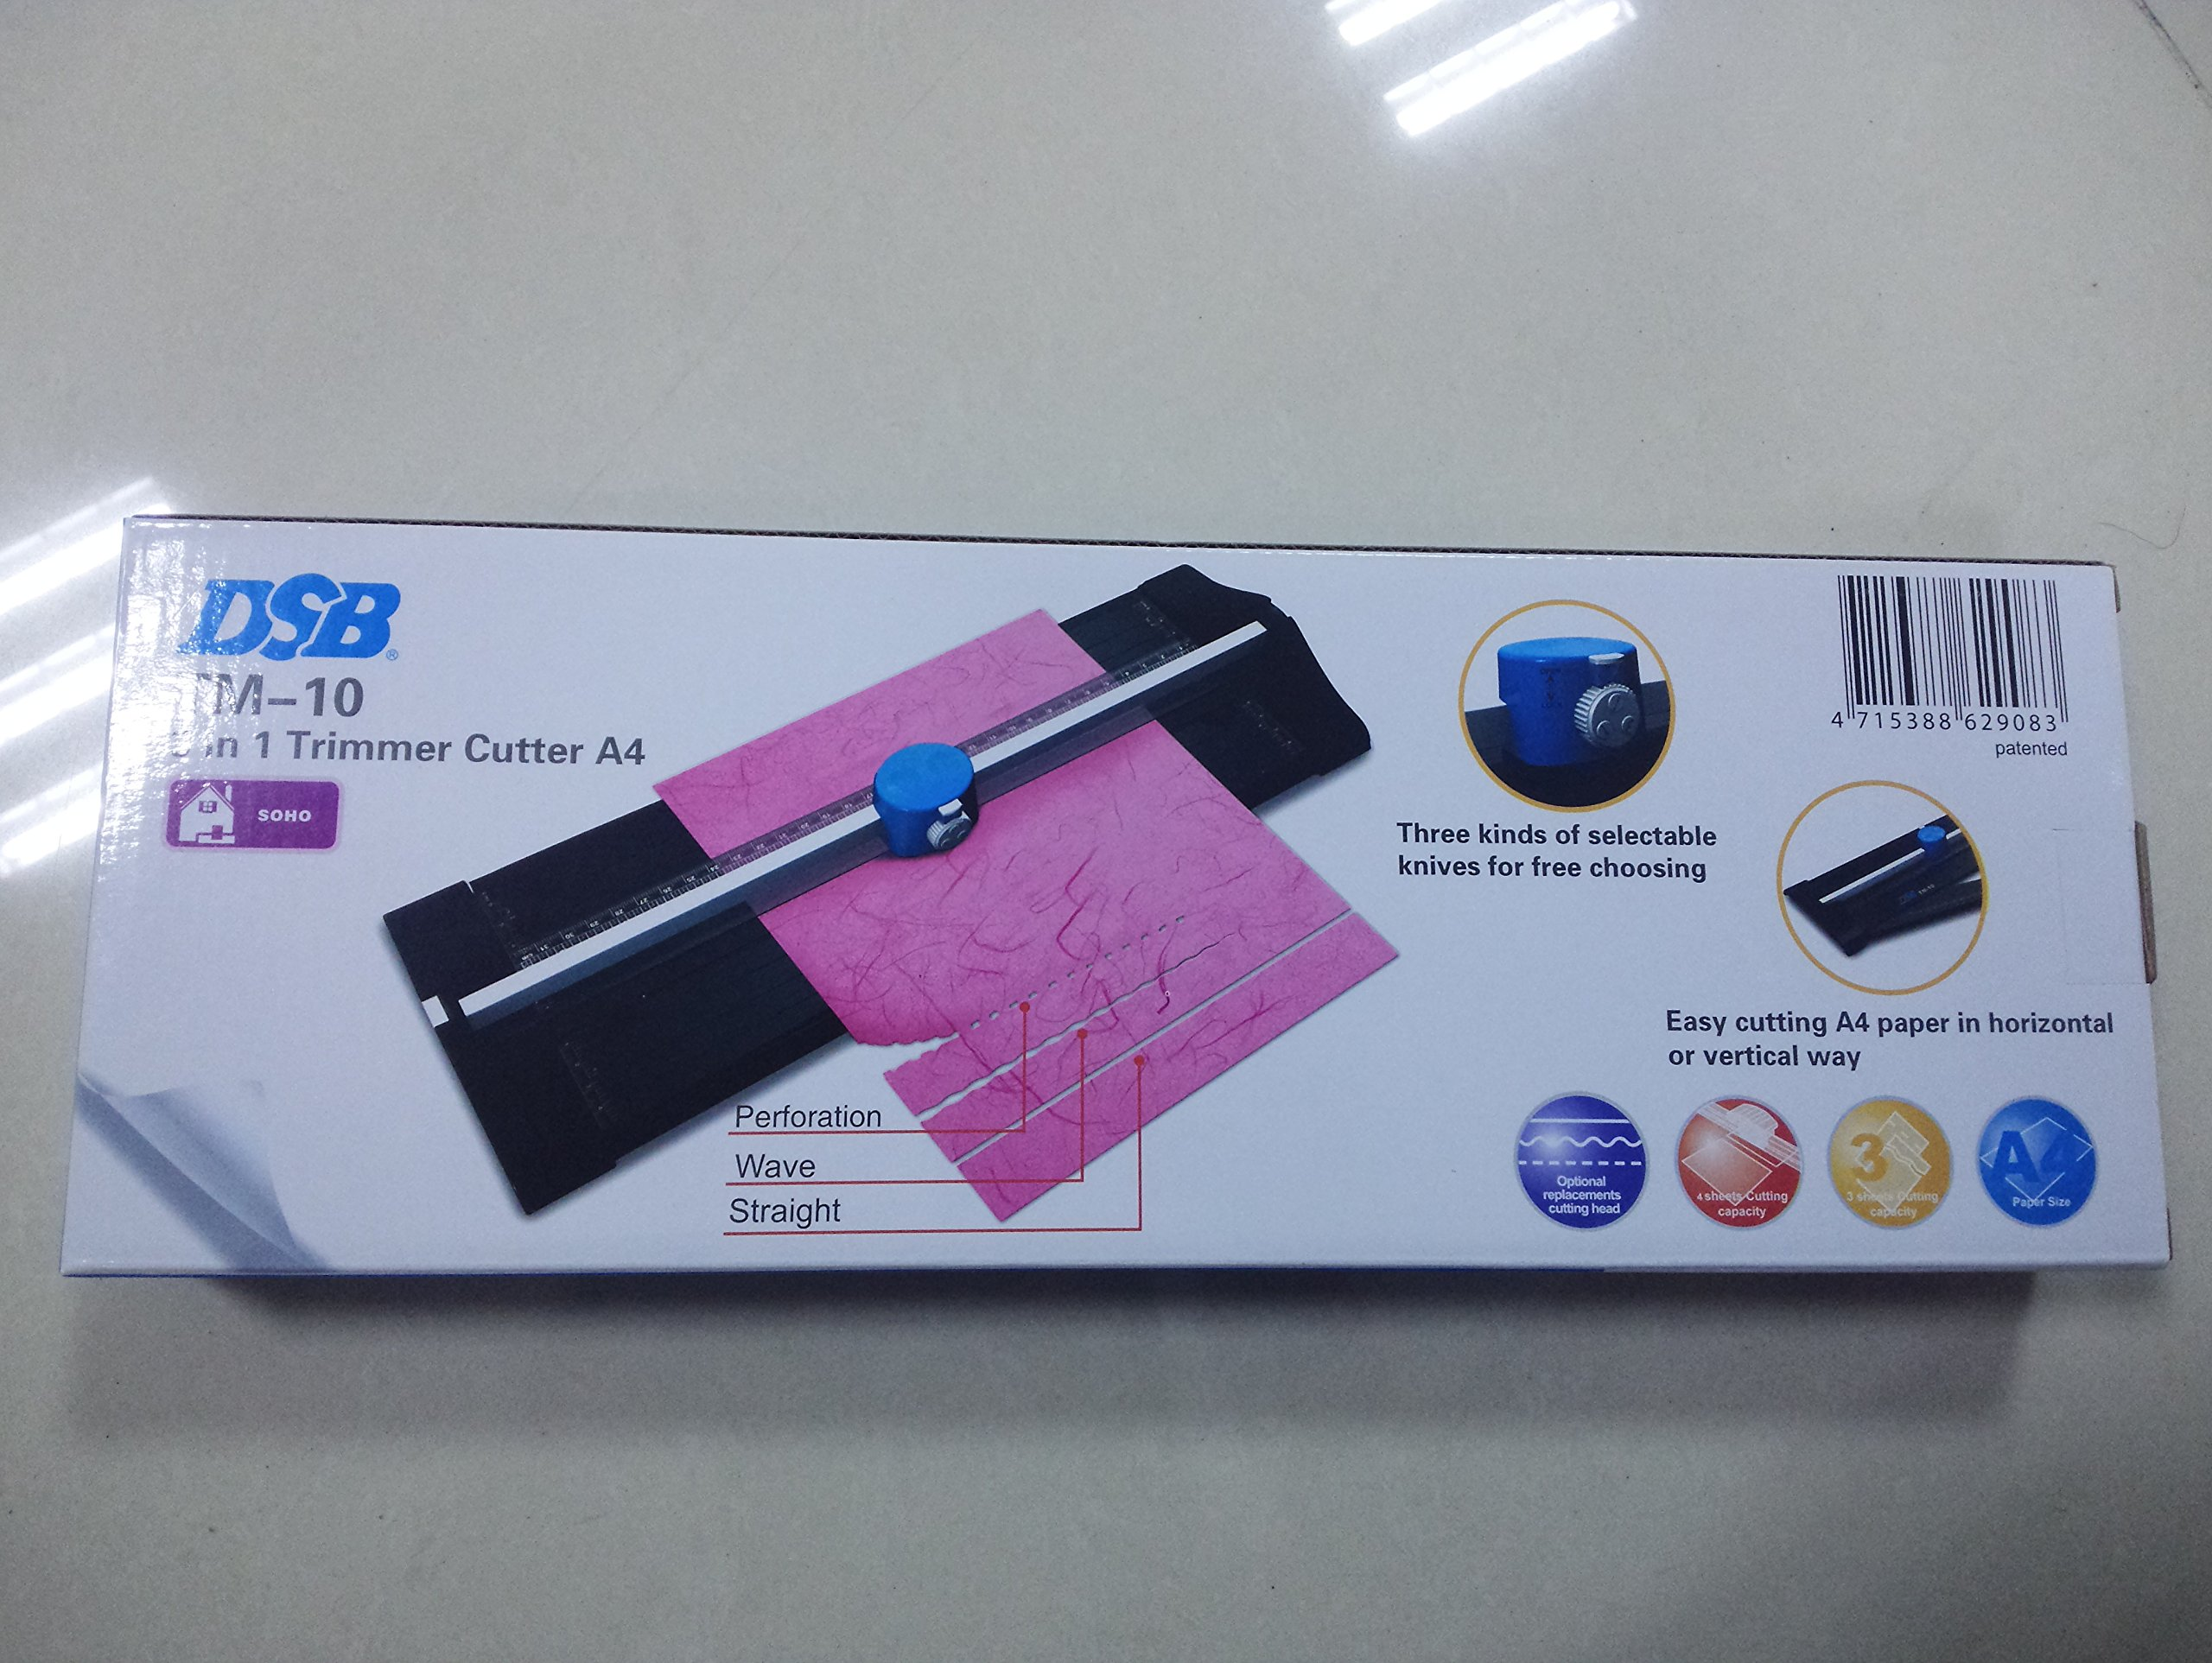 SHUOGOU A4 Paper Trimmer/Photo Cutter with Straight Perforation and Wave 3 Cutting Style - One Additional Cutting Mat Strip, Photos Or Labels by SHUOGOU (Image #7)